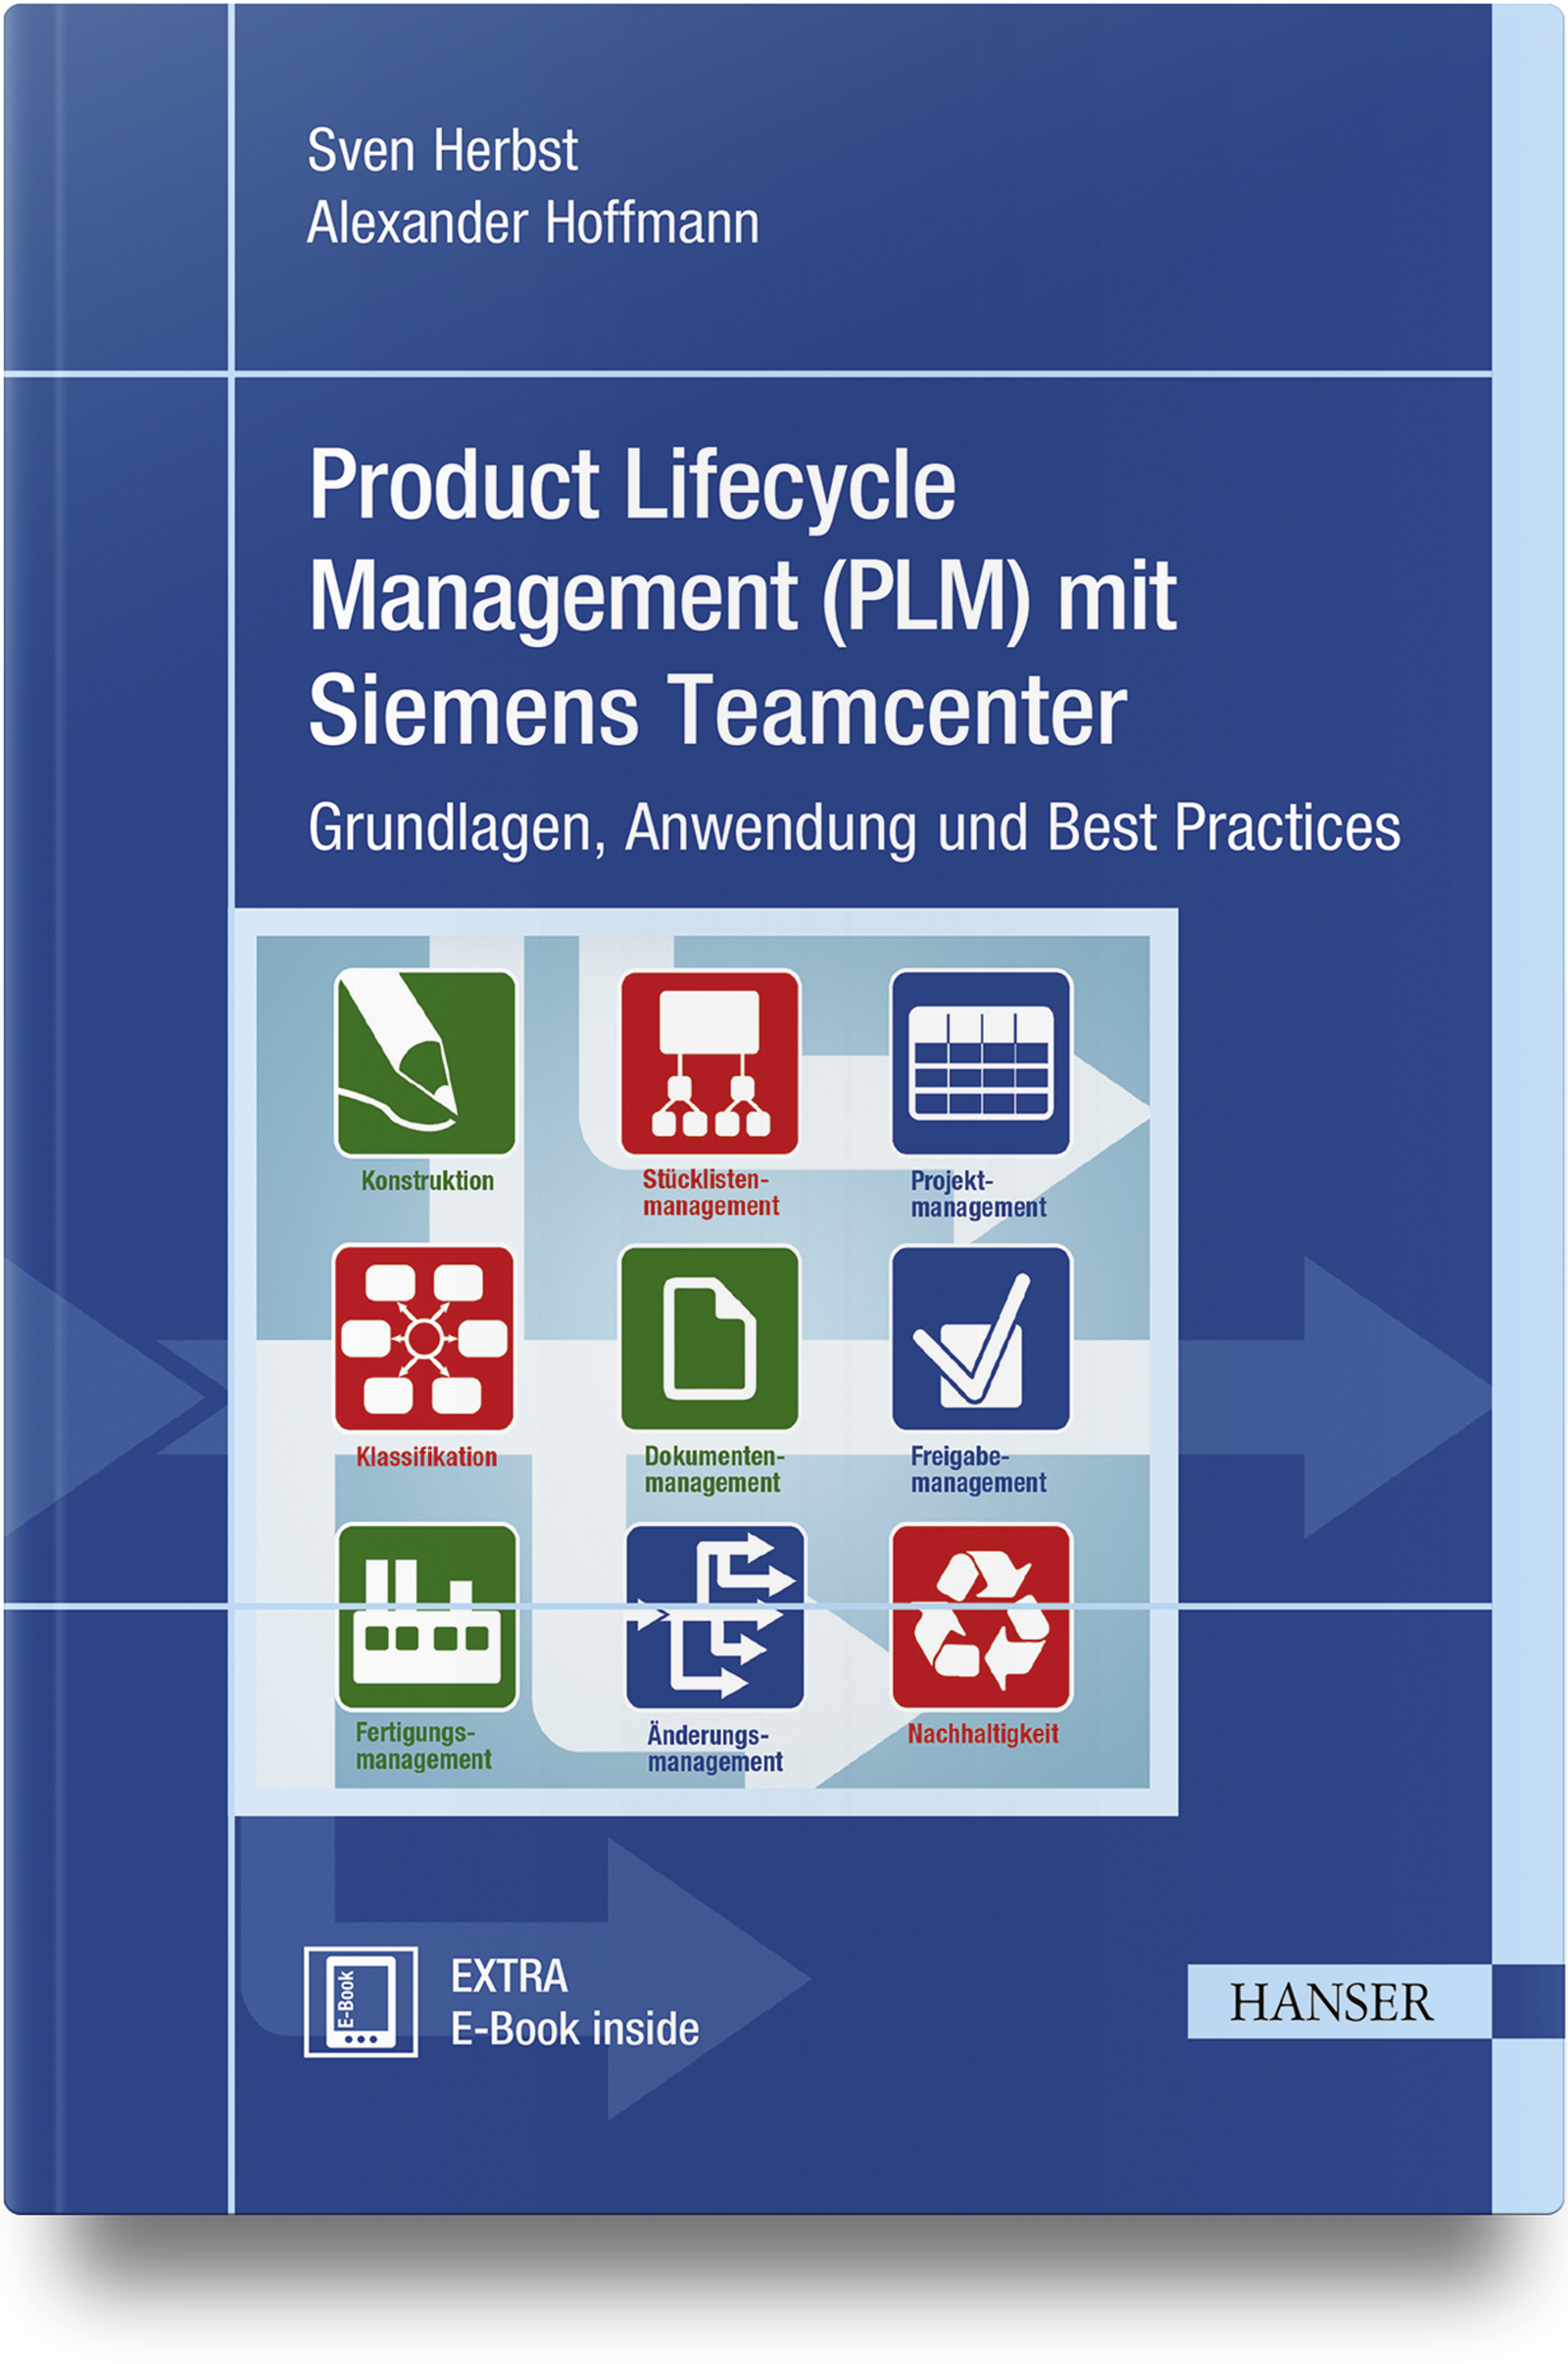 Herbst, Hoffmann, Product Lifecycle Management (PLM) mit Siemens Teamcenter, 978-3-446-44519-2